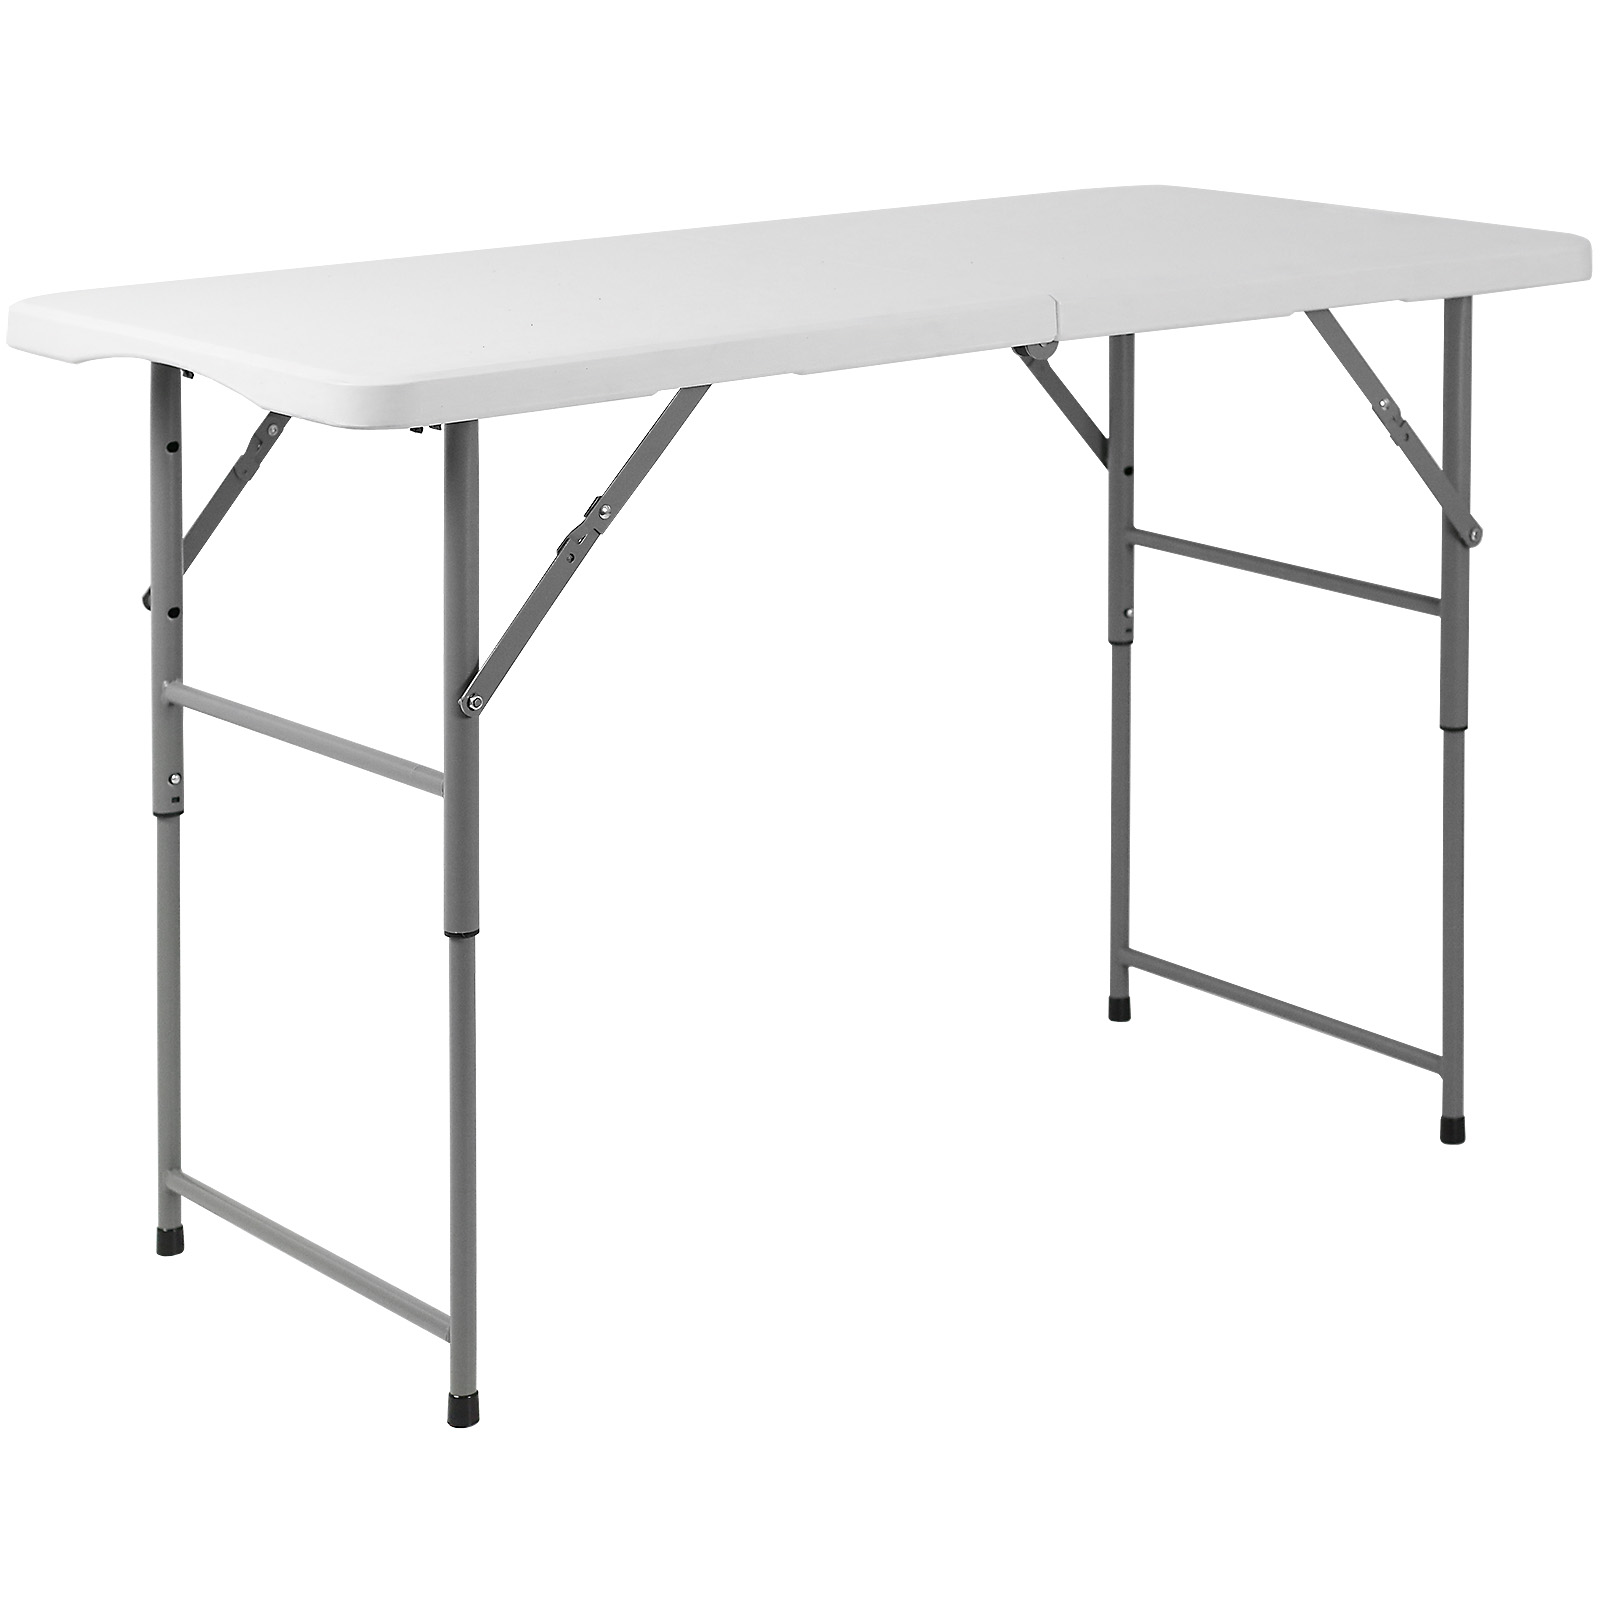 Sentinel HARTLEYS 4FT FOLDING TRESTLE TABLE  CAMPING/FESTIVAL/FETE/GARDEN/CATERING/OUTDOOR